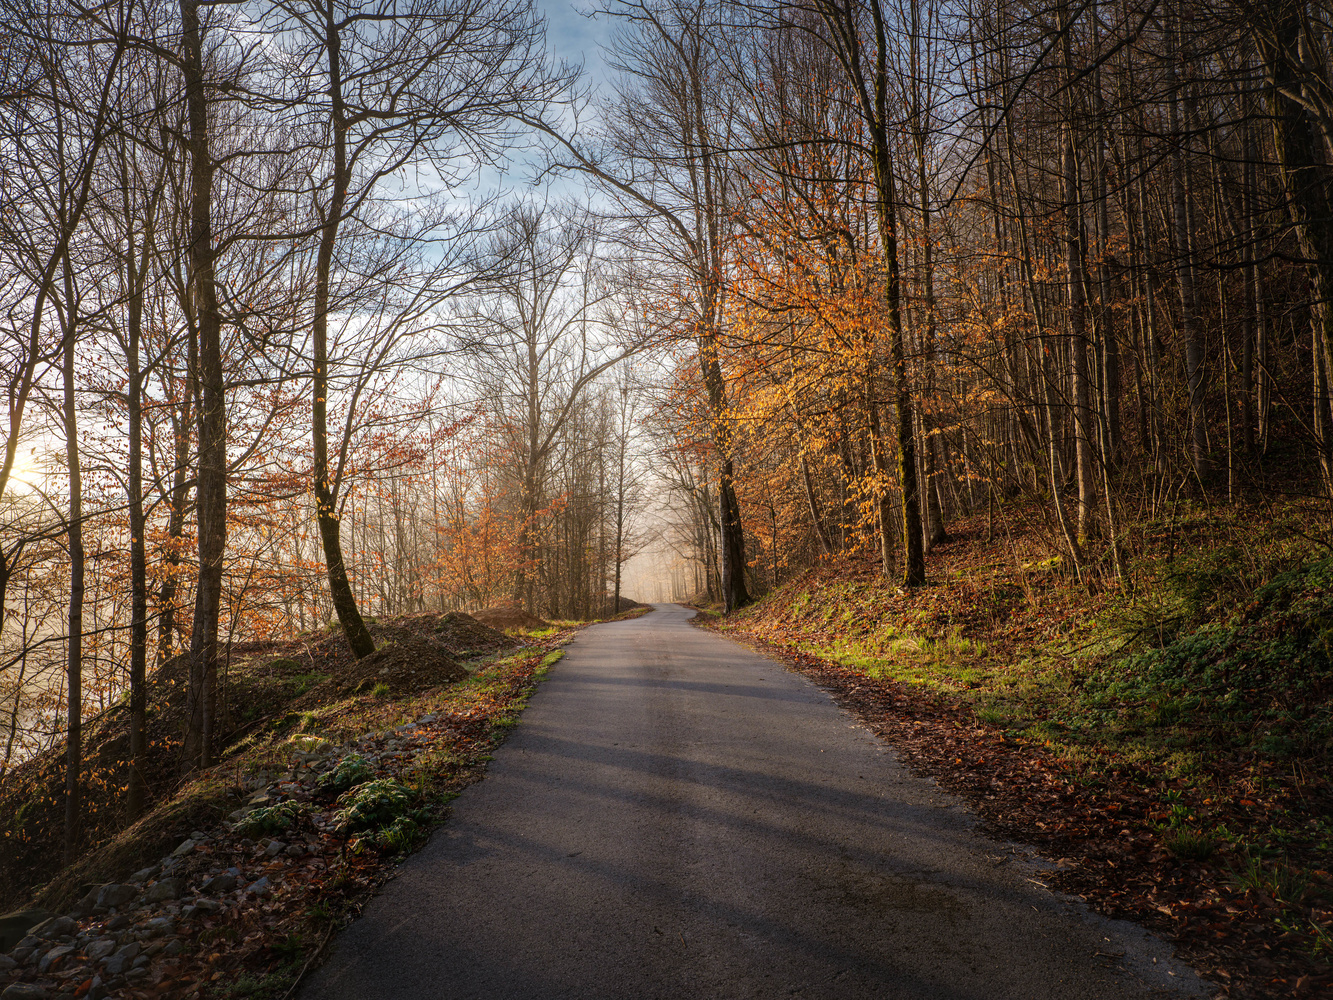 Early Morning Road by Korey Napier